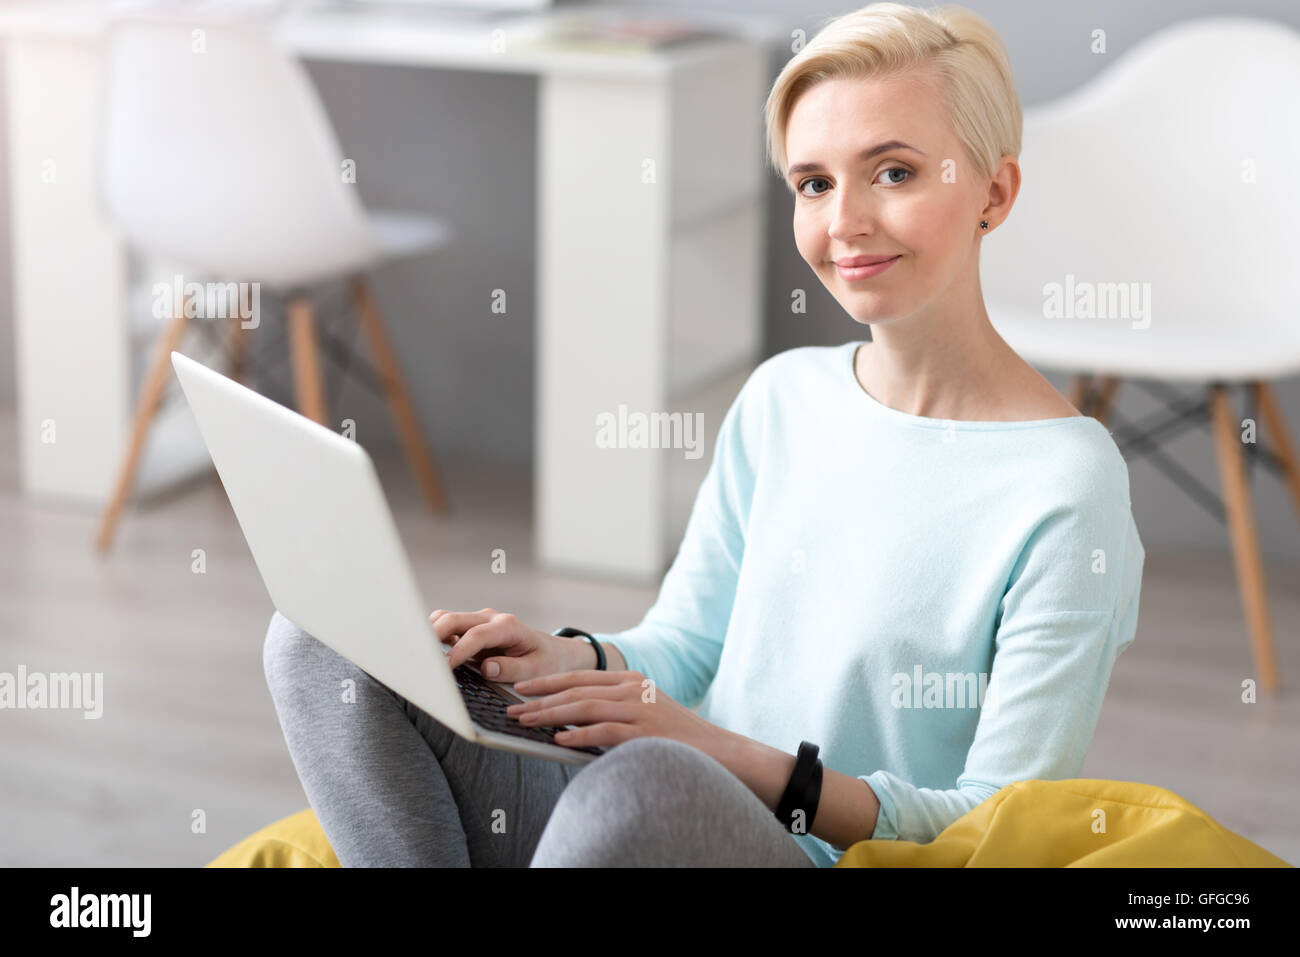 Woman looking at camera and using laptop - Stock Image